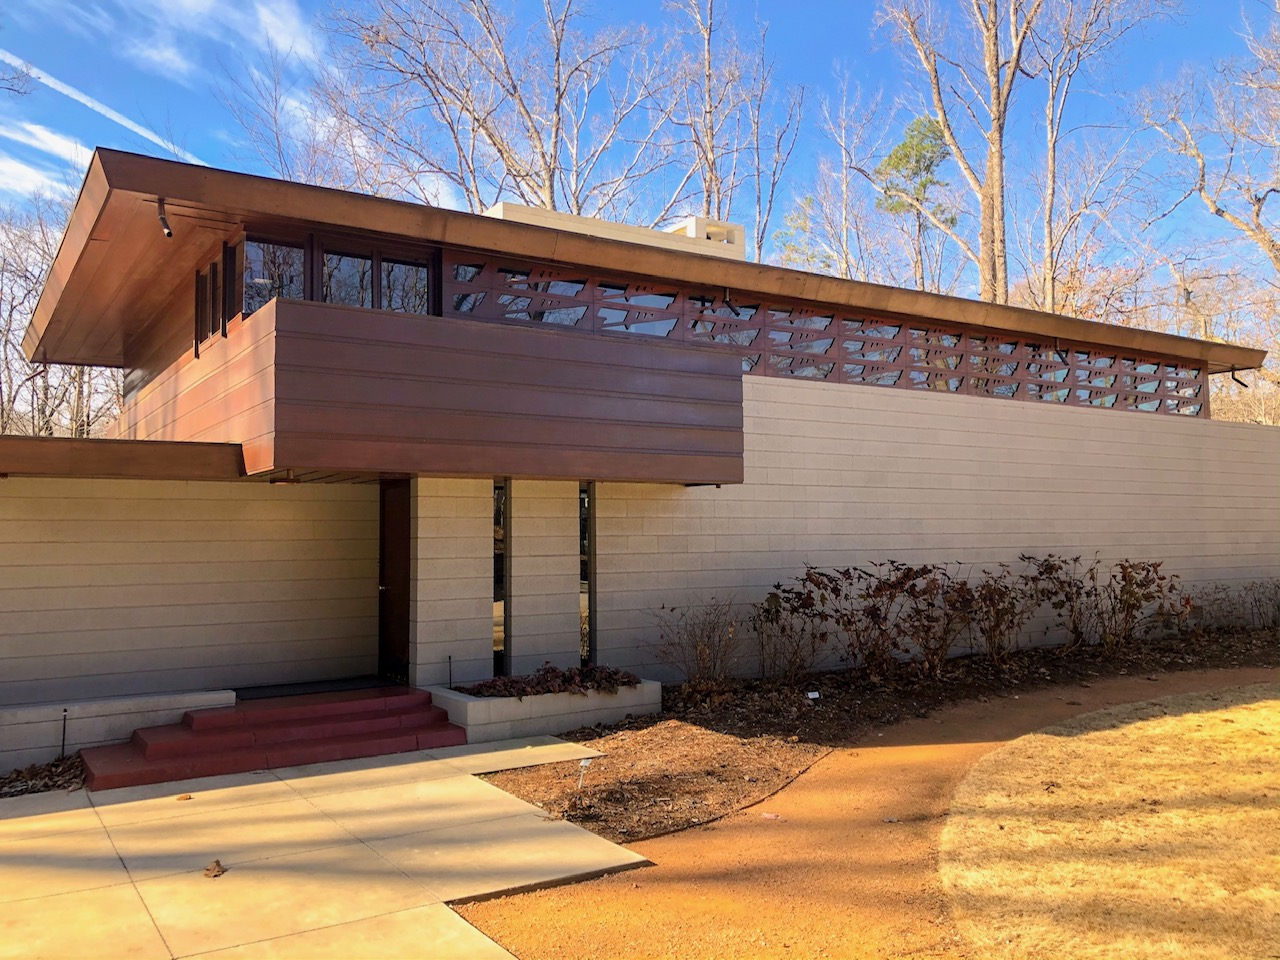 Bachman-Wilson house at Crystal Bridges Museum